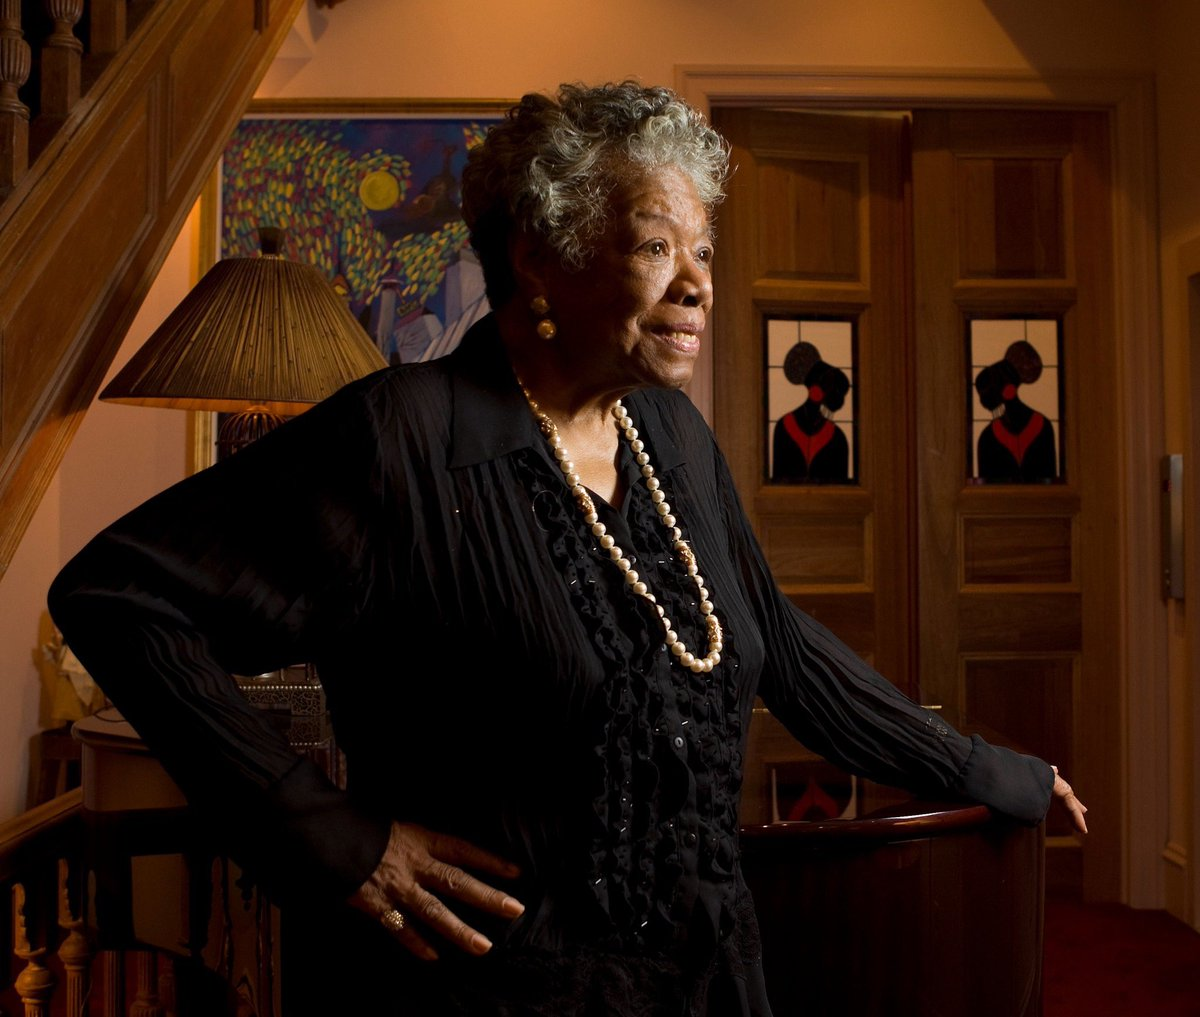 COMMON's photo on Dr. Angelou